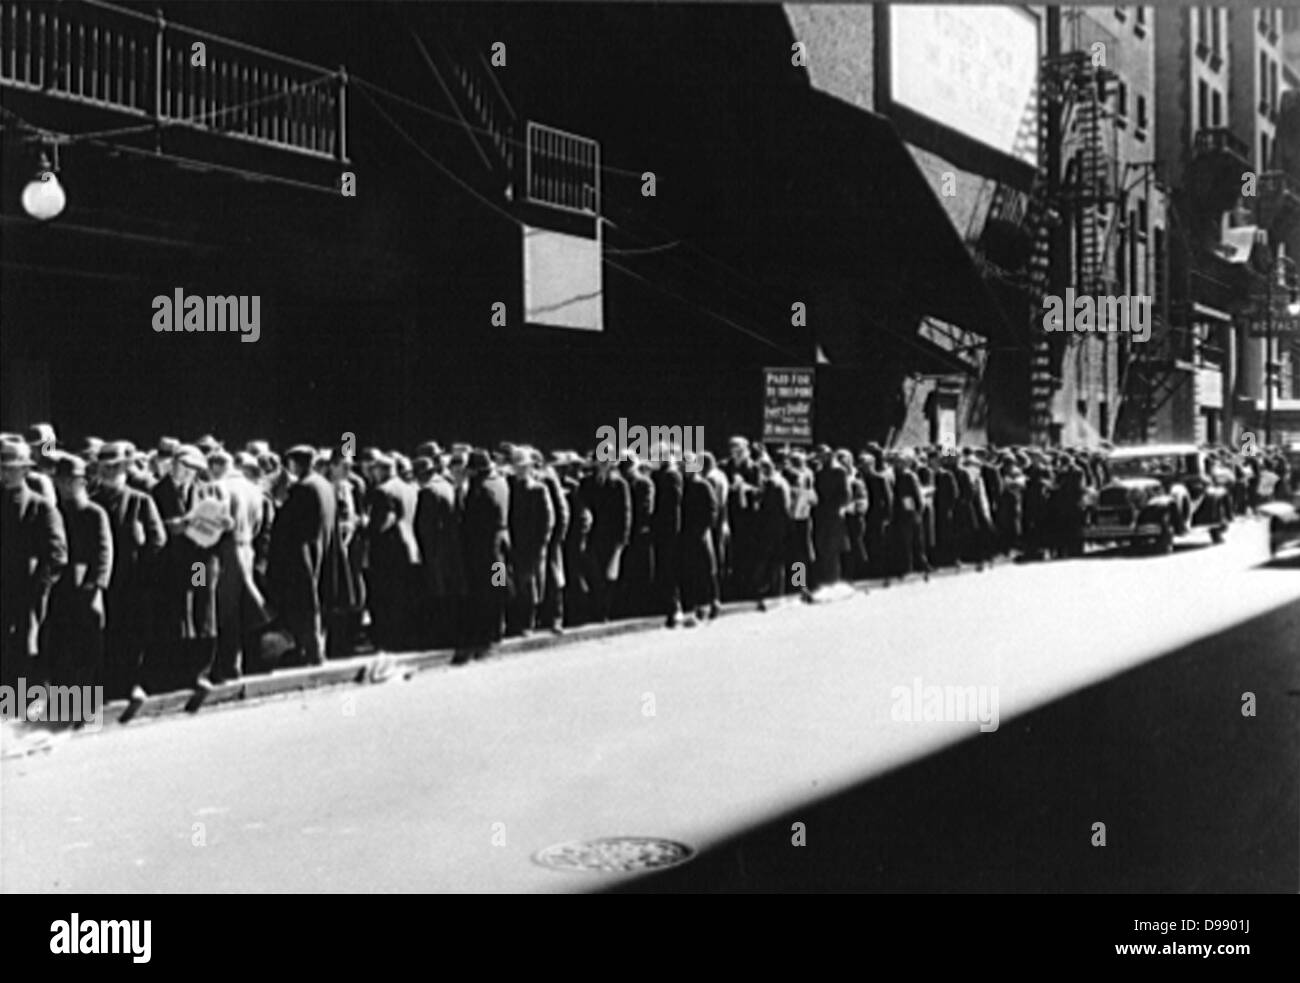 Soup kitchen in the USA 1930's during the Great Depression. - Stock Image